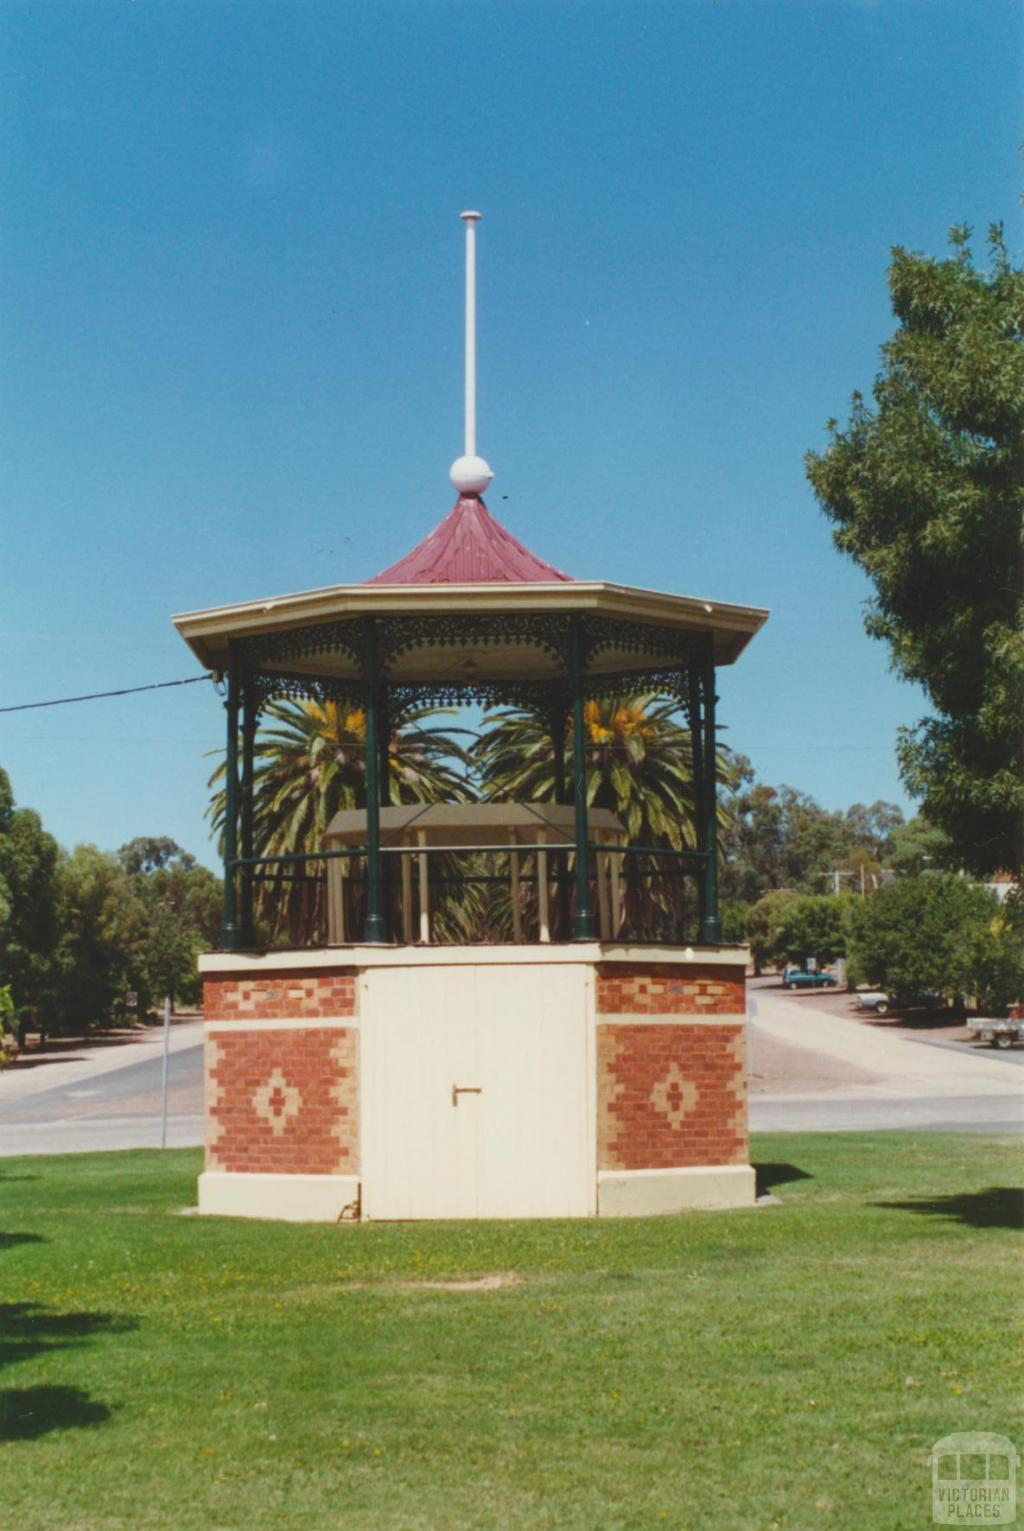 Rushworth, 2001